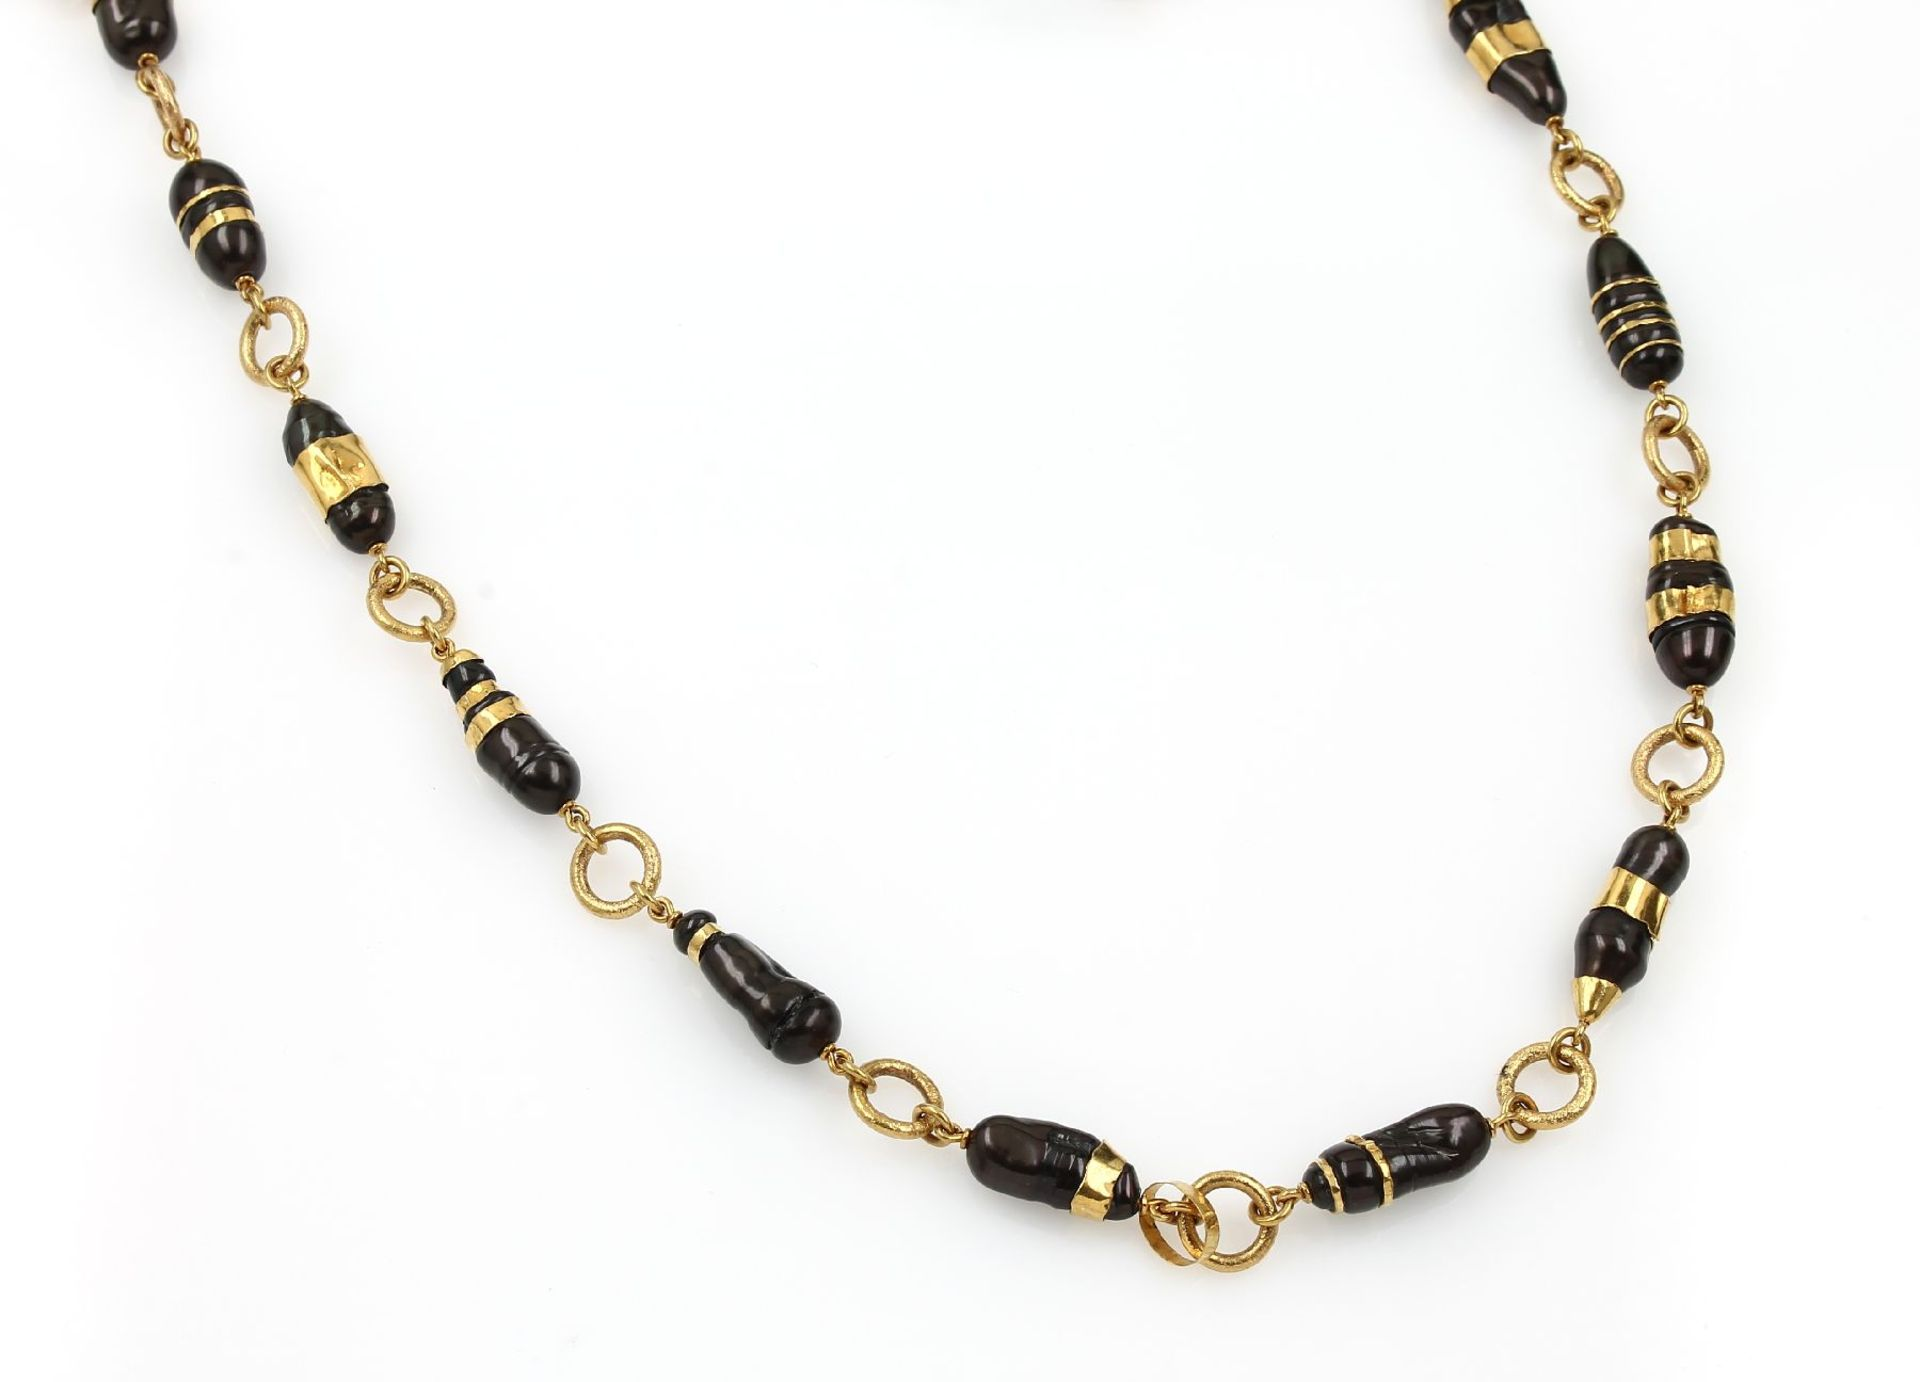 Los 61501 - Necklace with biwa pearls, YG 900/000 , pure hand-made, brown biwa pearls, baroque, hook clasp, l.